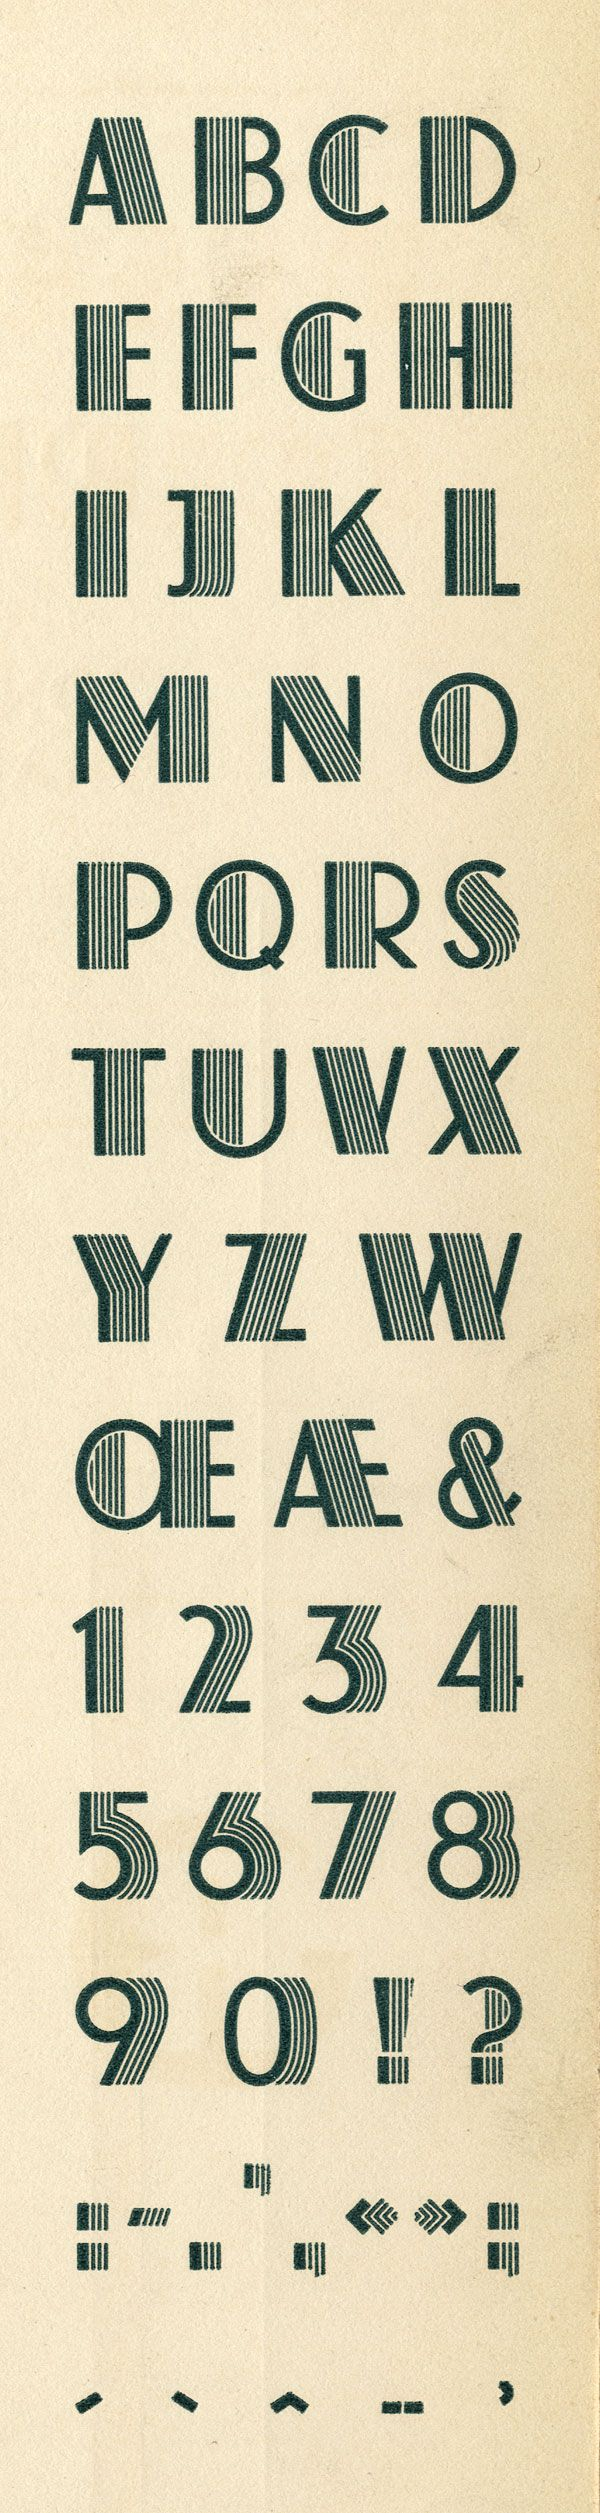 K.H. Schaefer's Fatima Versalien AKA Atlas, as published by the Fonderie Typographique Française in 1933